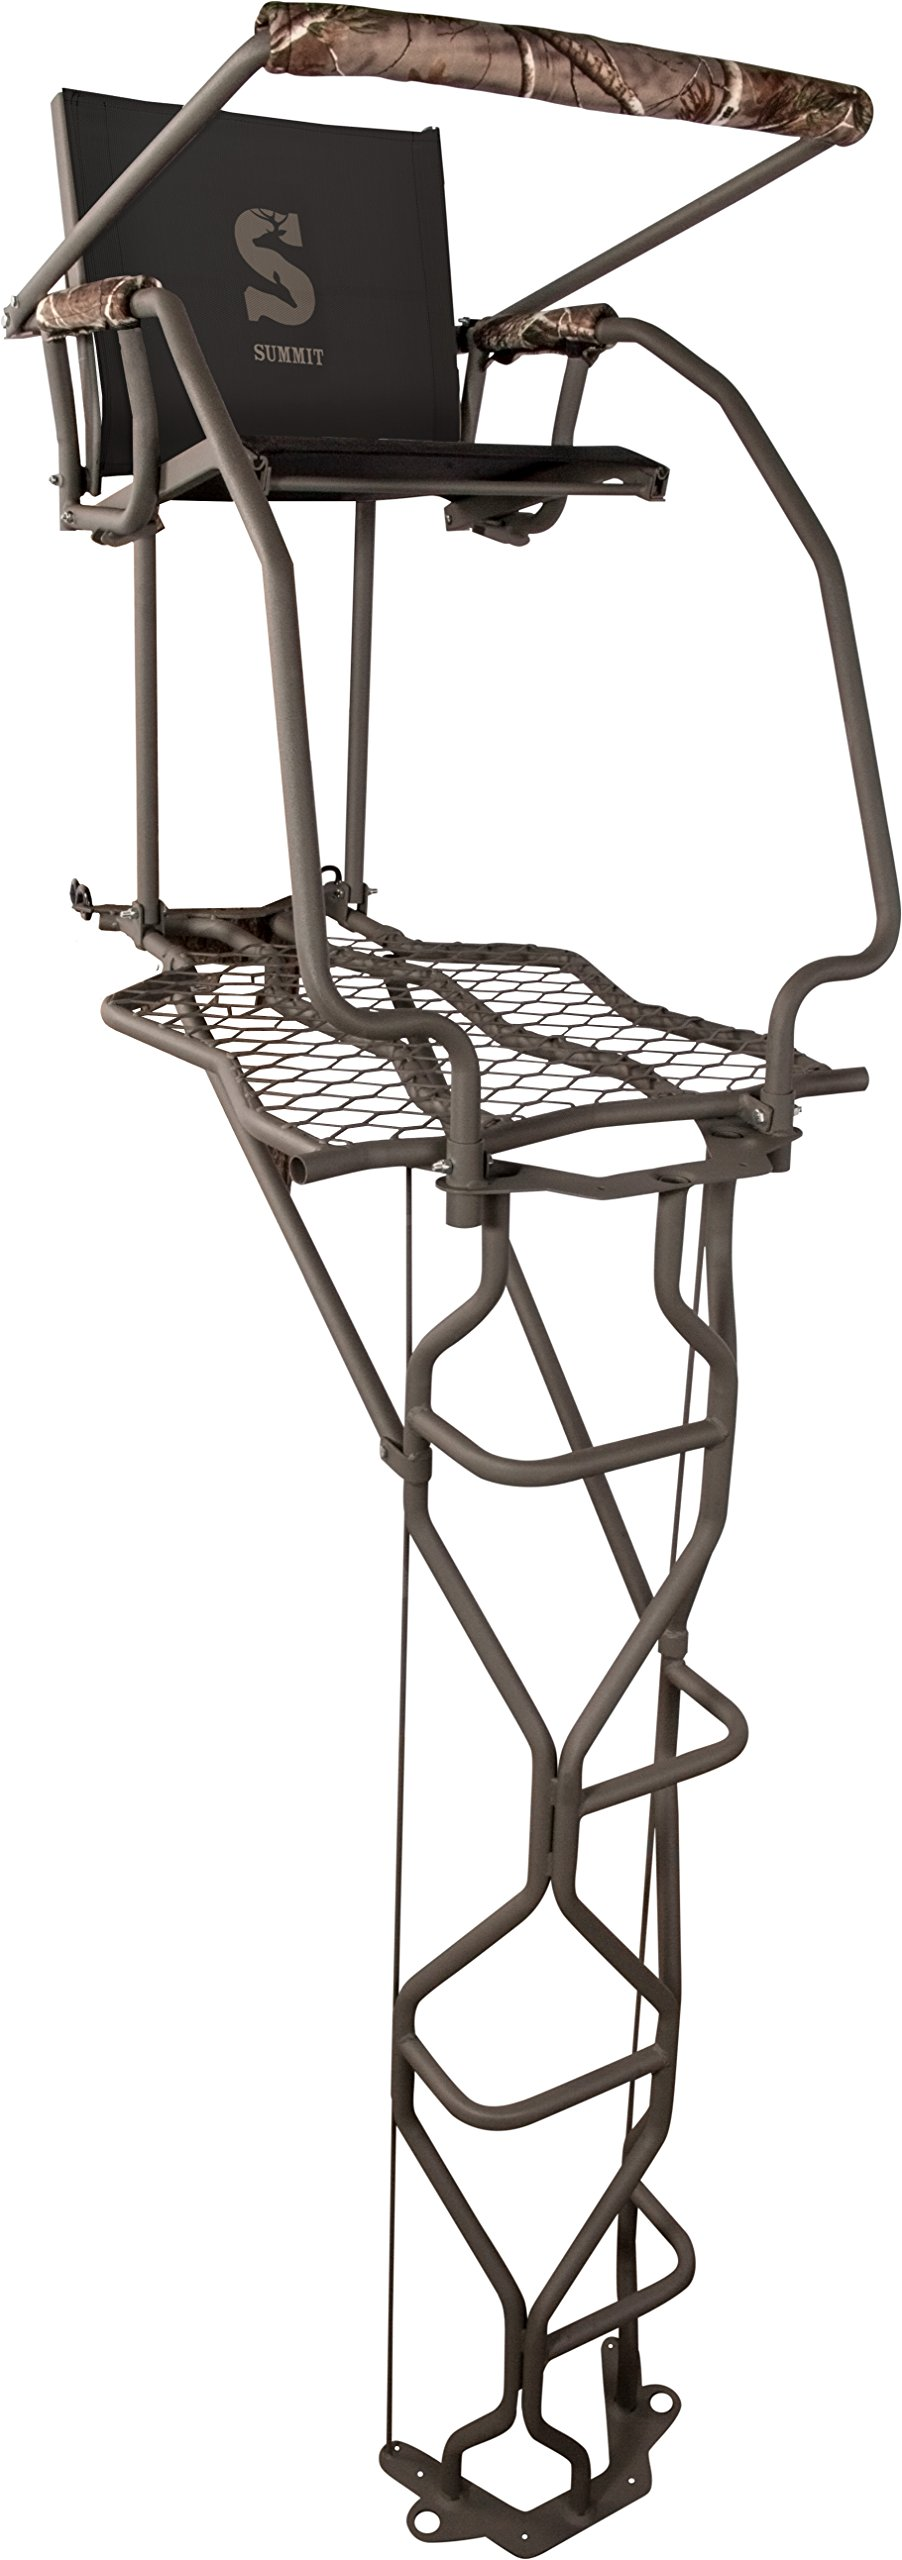 Summit Treestands The Vine Single Hunter Ladder Stand by Summit Treestands (Image #1)